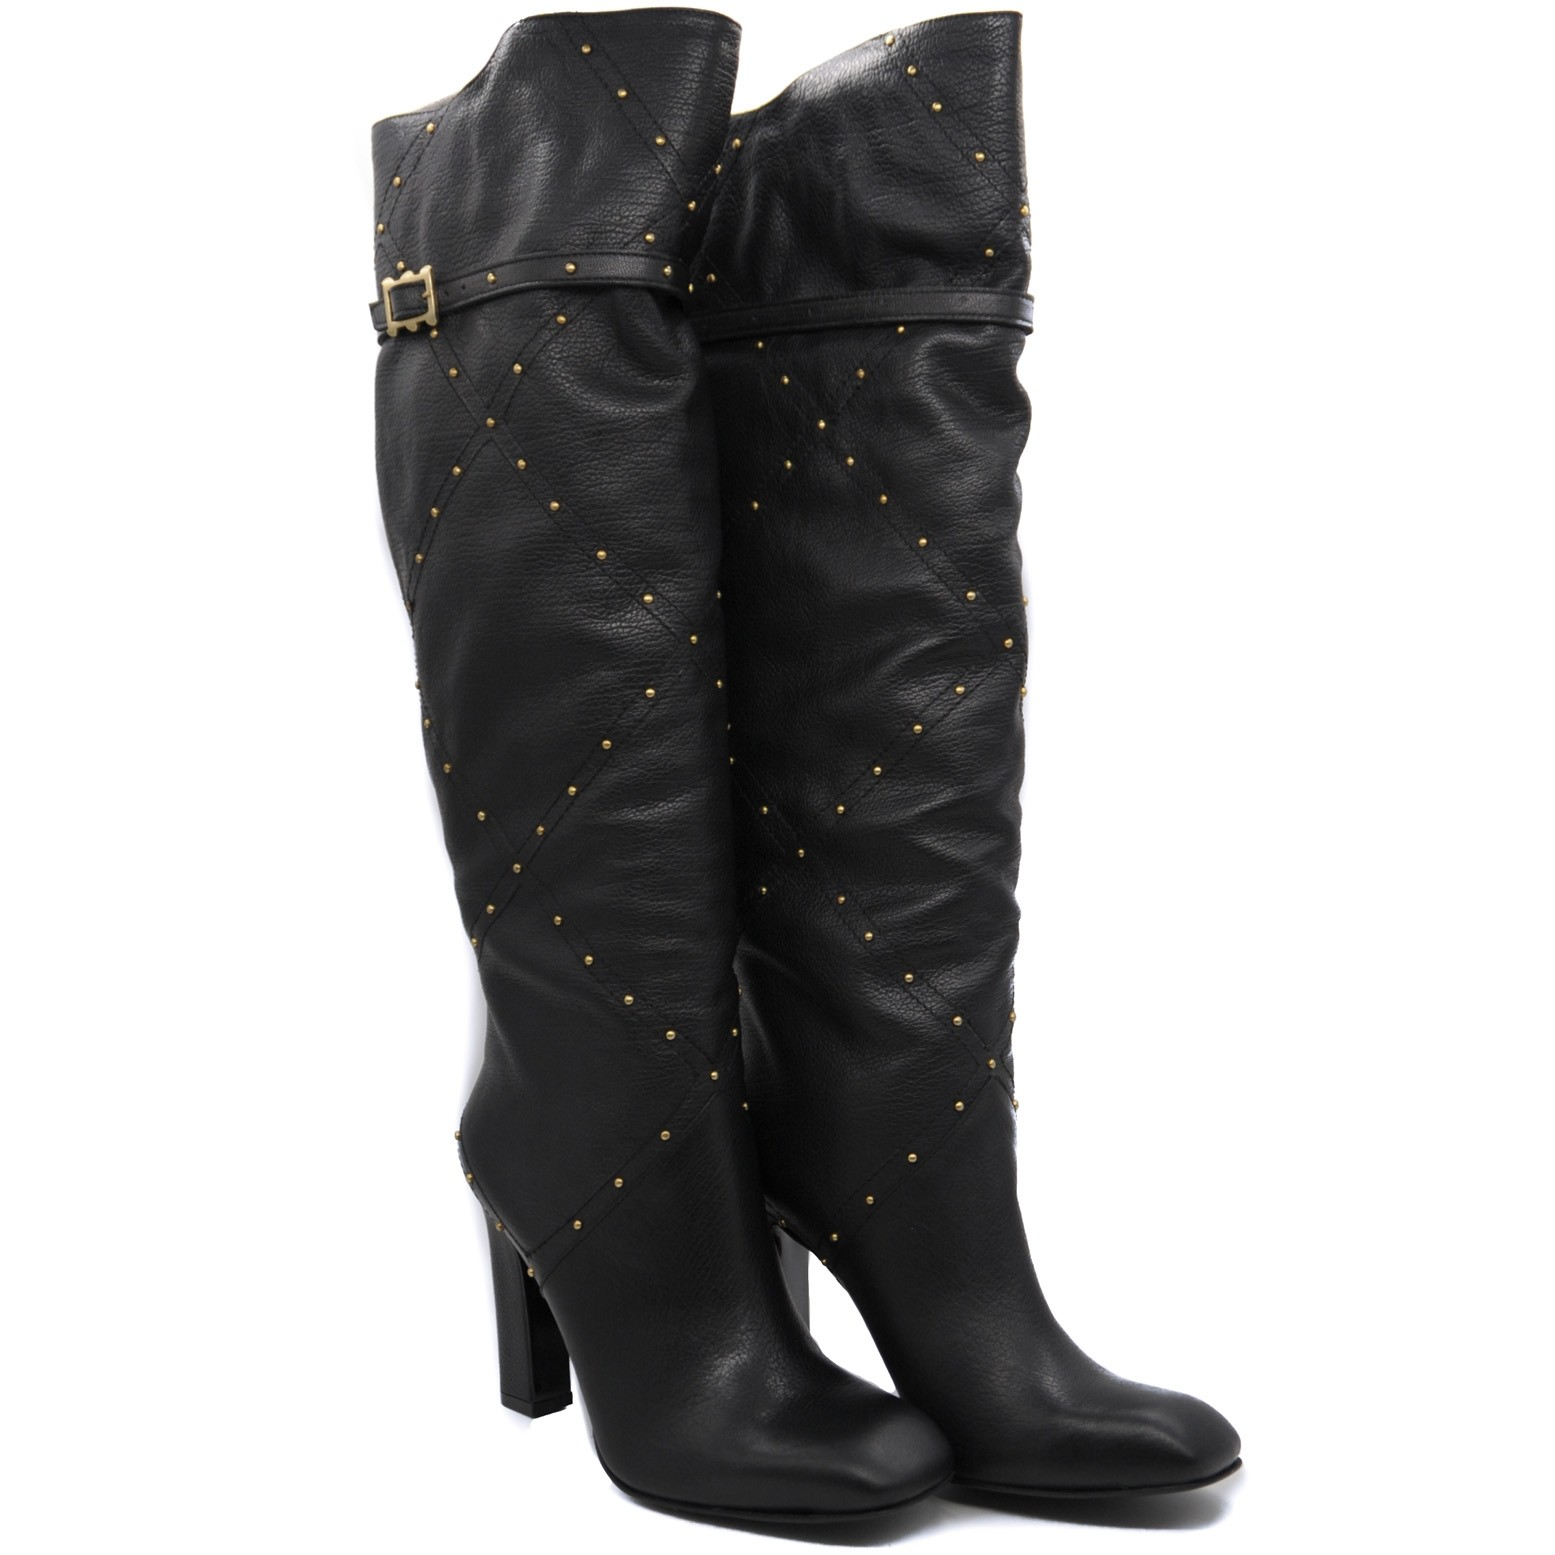 Stylish Knee Length Leather Boots with Heels and Stud Patterned Design